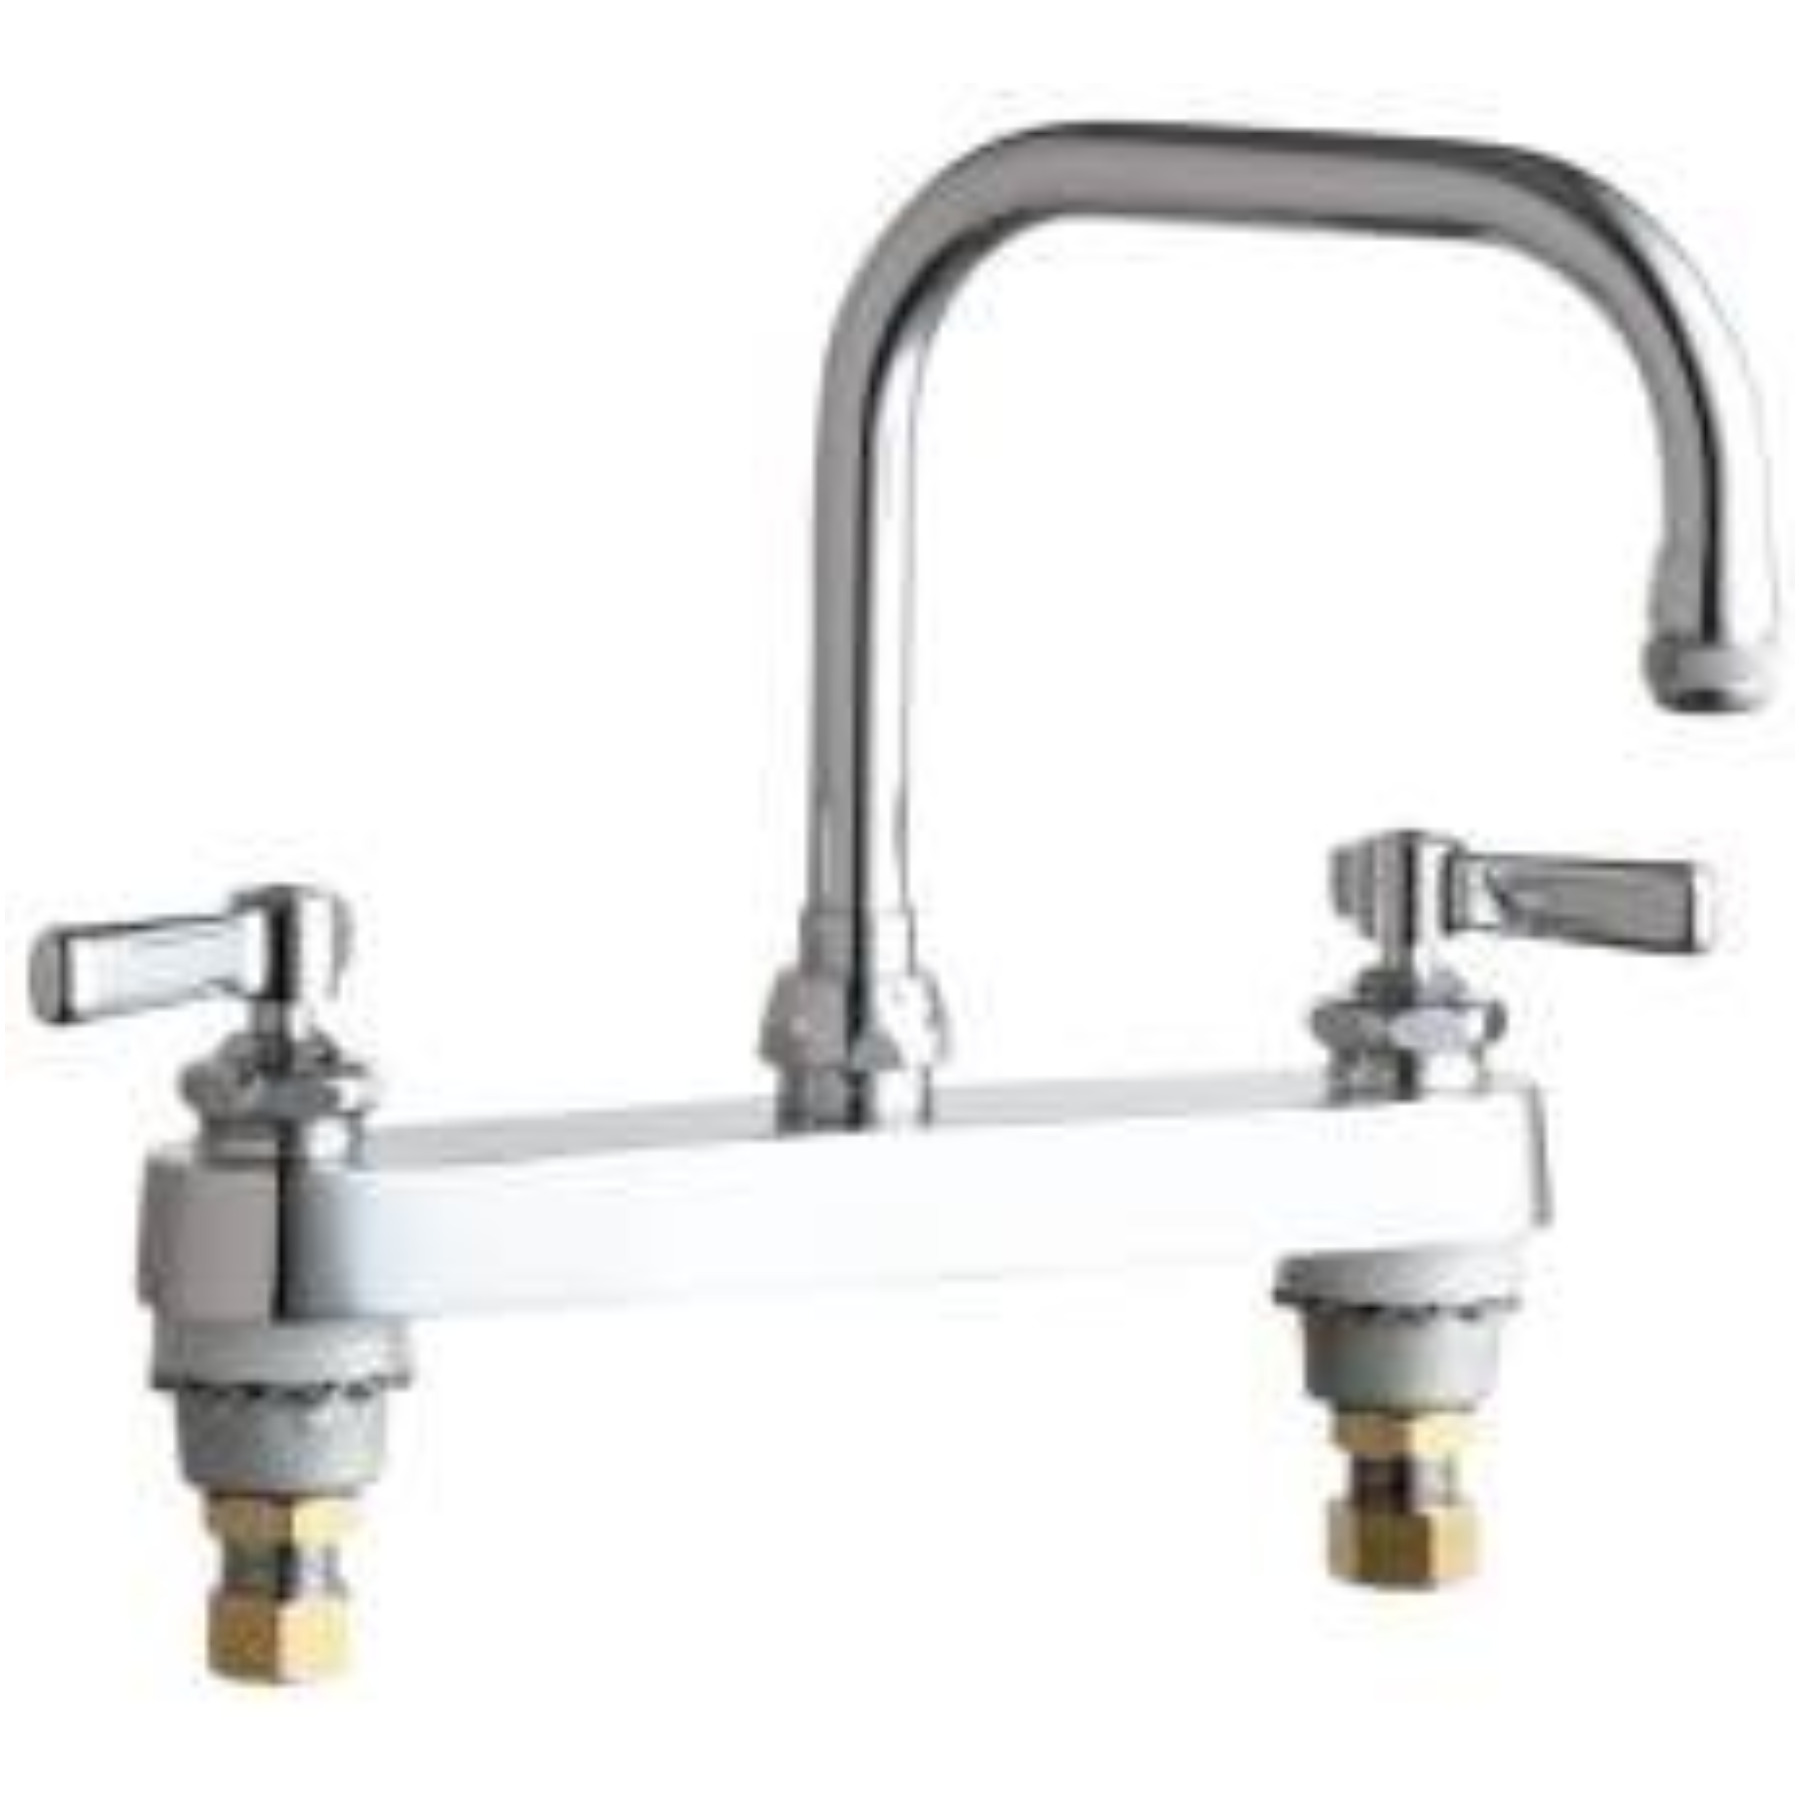 CHICAGO FAUCETS DECK MOUNT WORK BOARD SINK FAUCET WITH 8 IN. CENTERS, CHROME, LEAD FREE, WRIST BLADE HANDLES